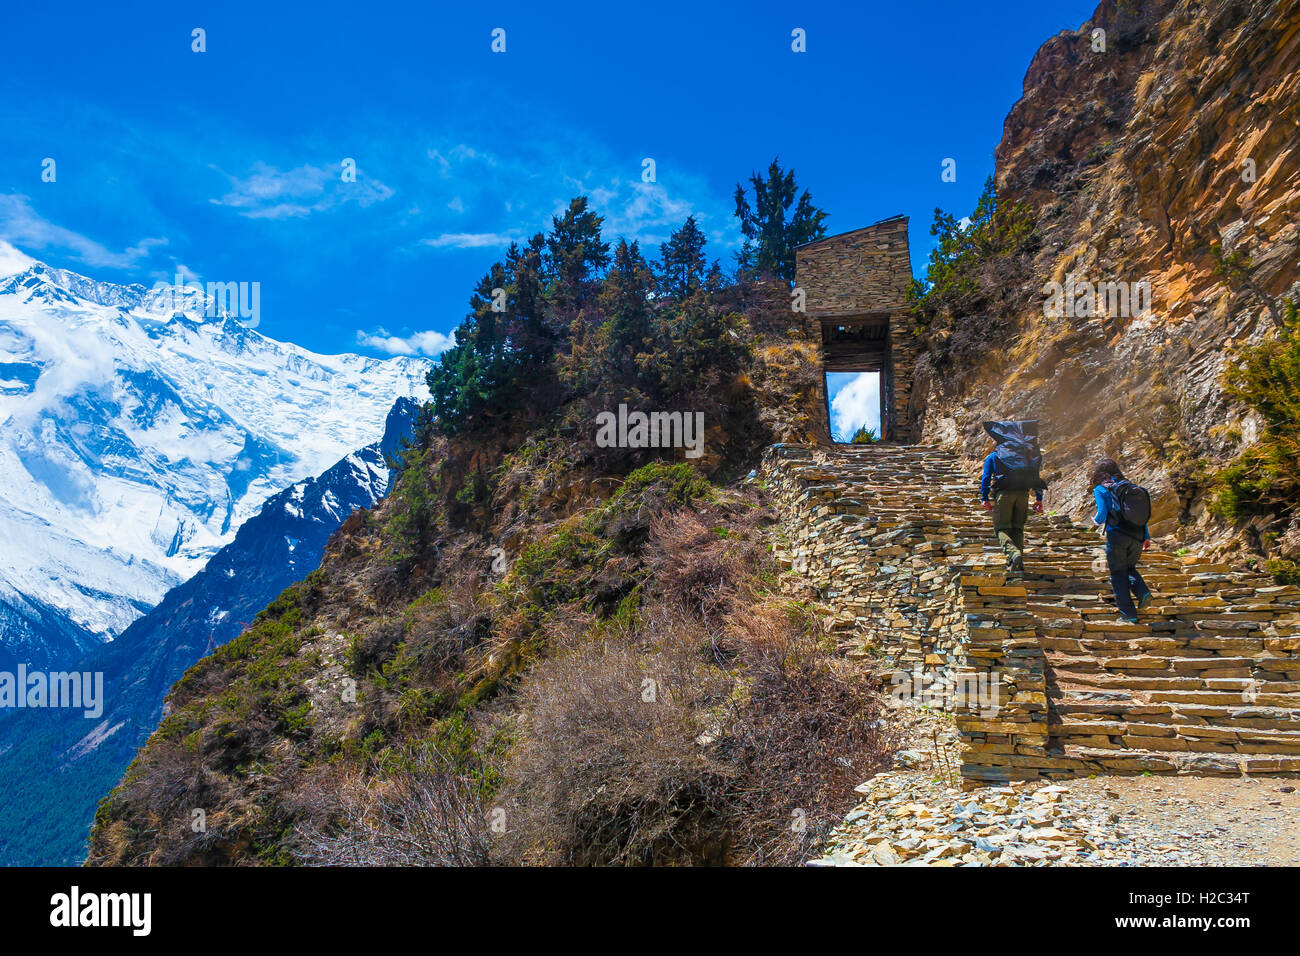 Two Person Backpack Trail Mountains Way.Mountain Trekking Rocks Path Landscape View Background.Hikking Travel Activity.HorizontaStock Photo